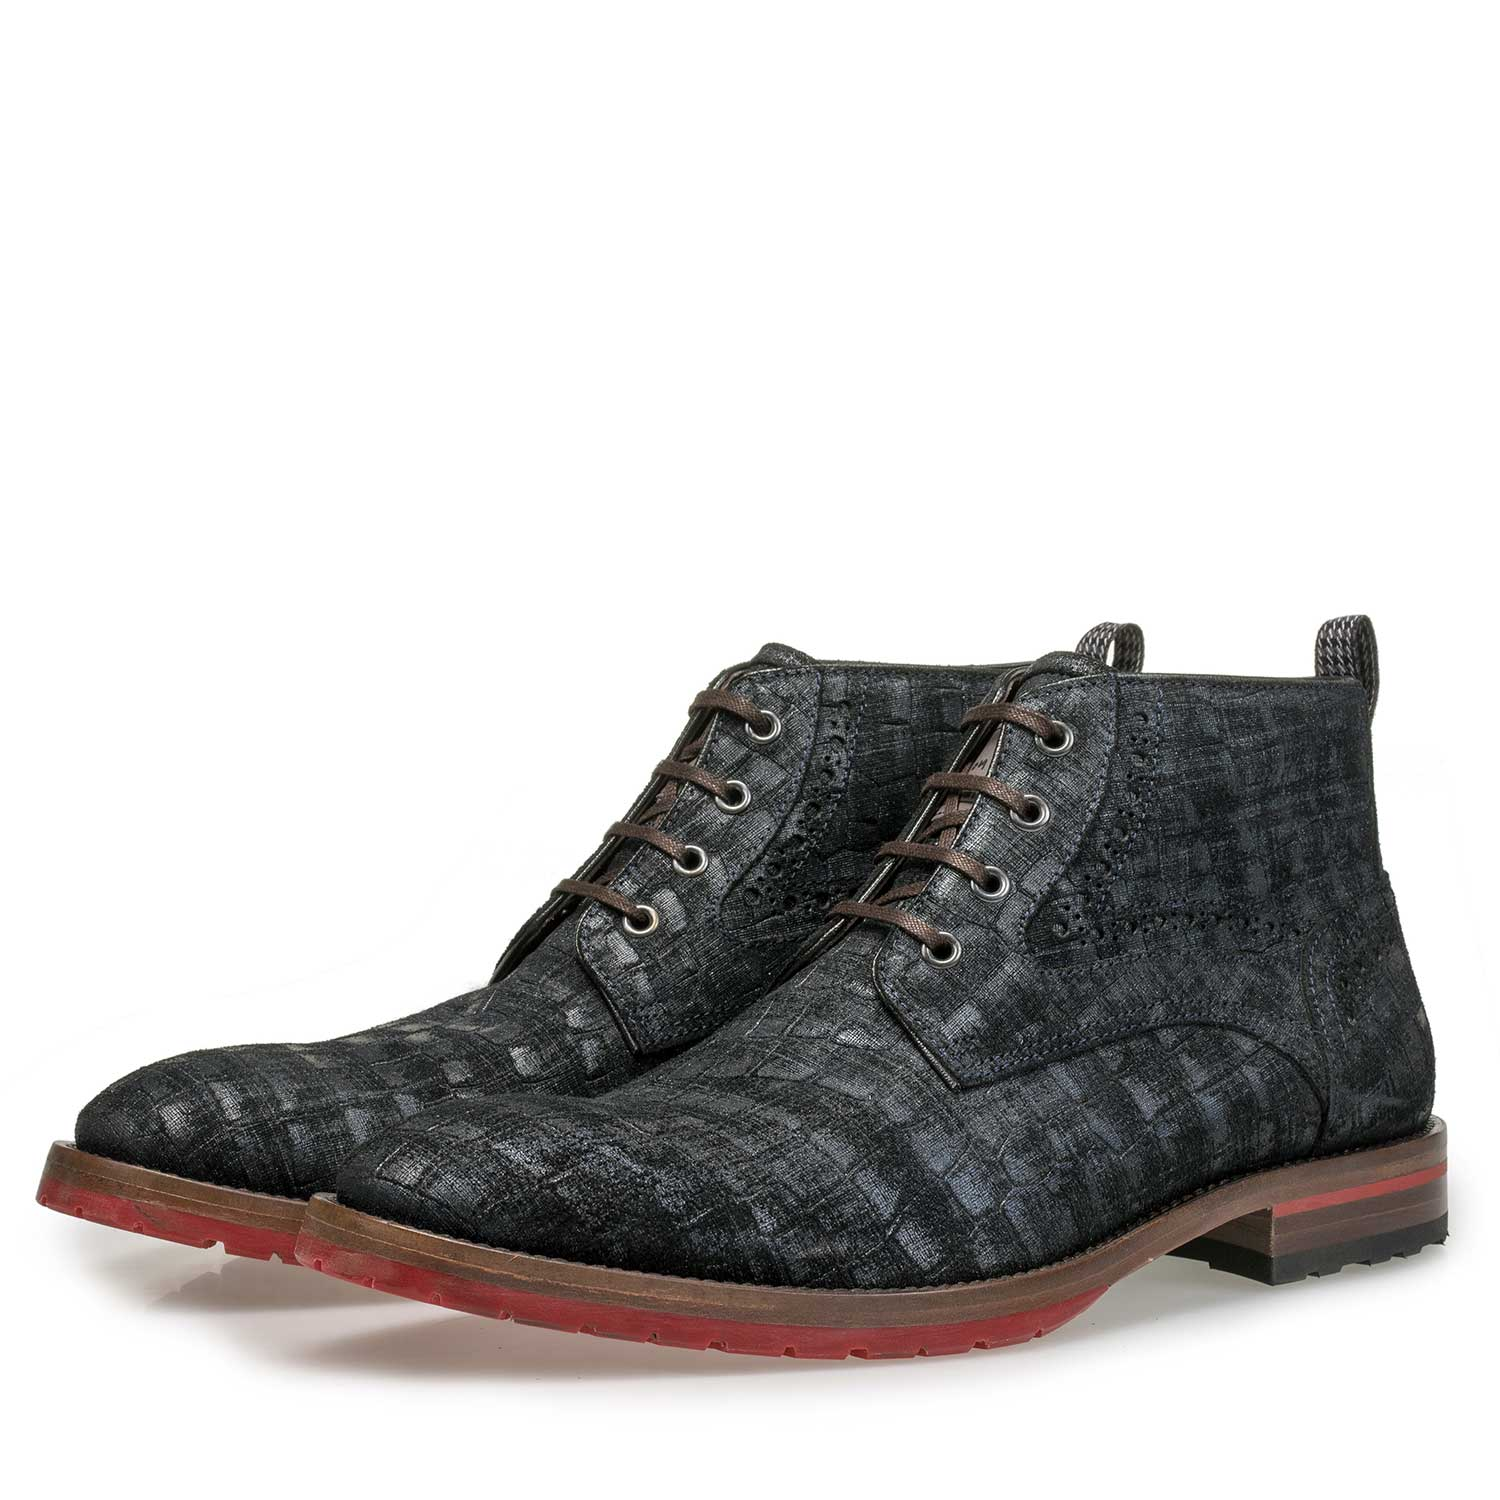 10317/08 - Blue suede leather lace boot with a check pattern